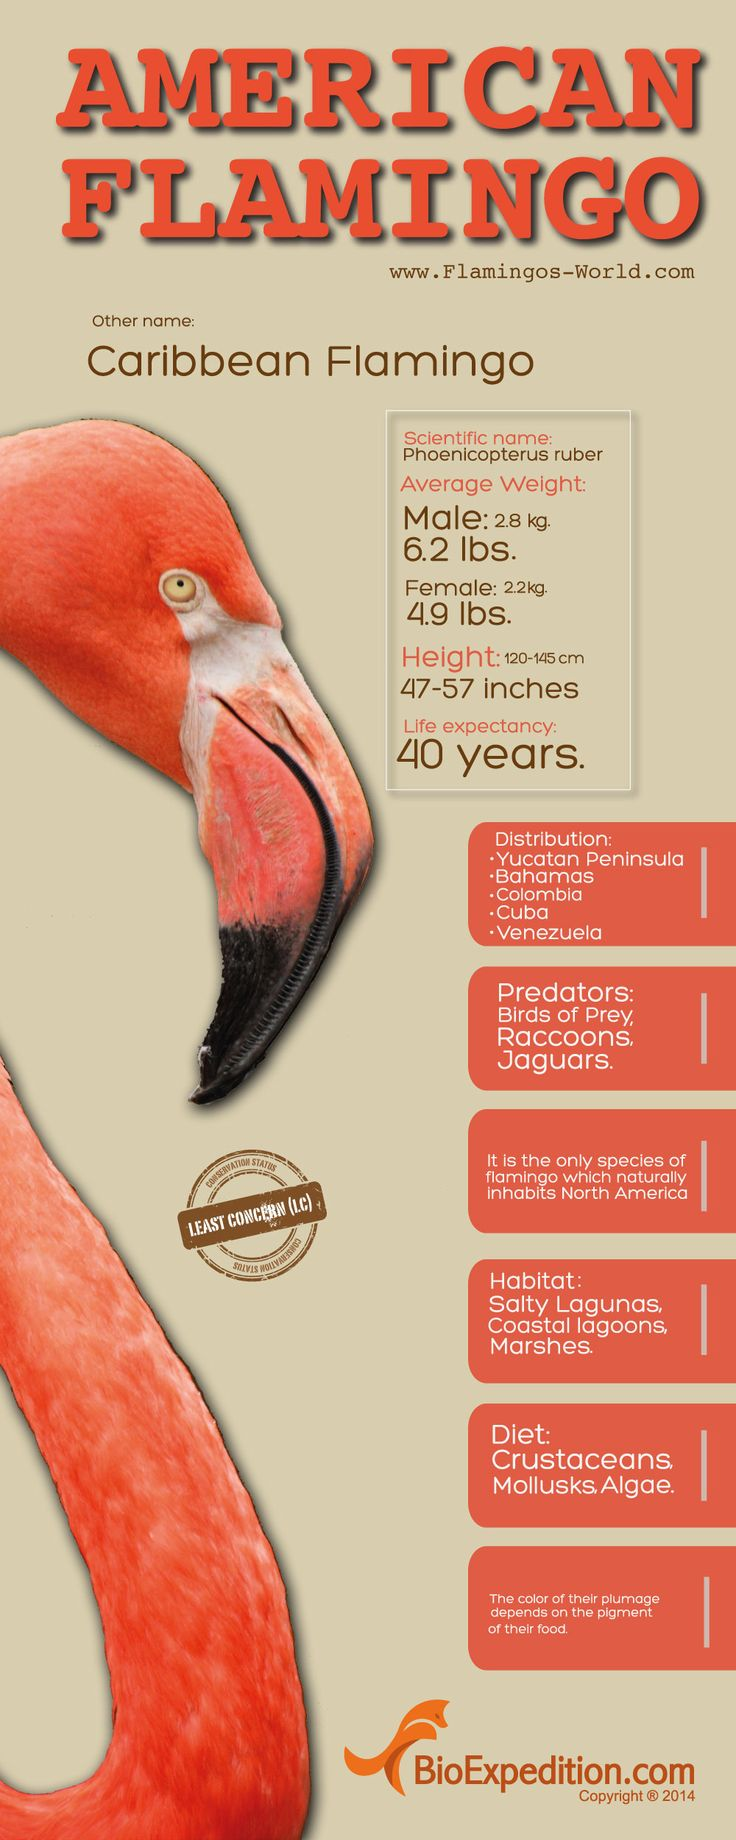 American Flamingo Infographic - Animal Facts and Information